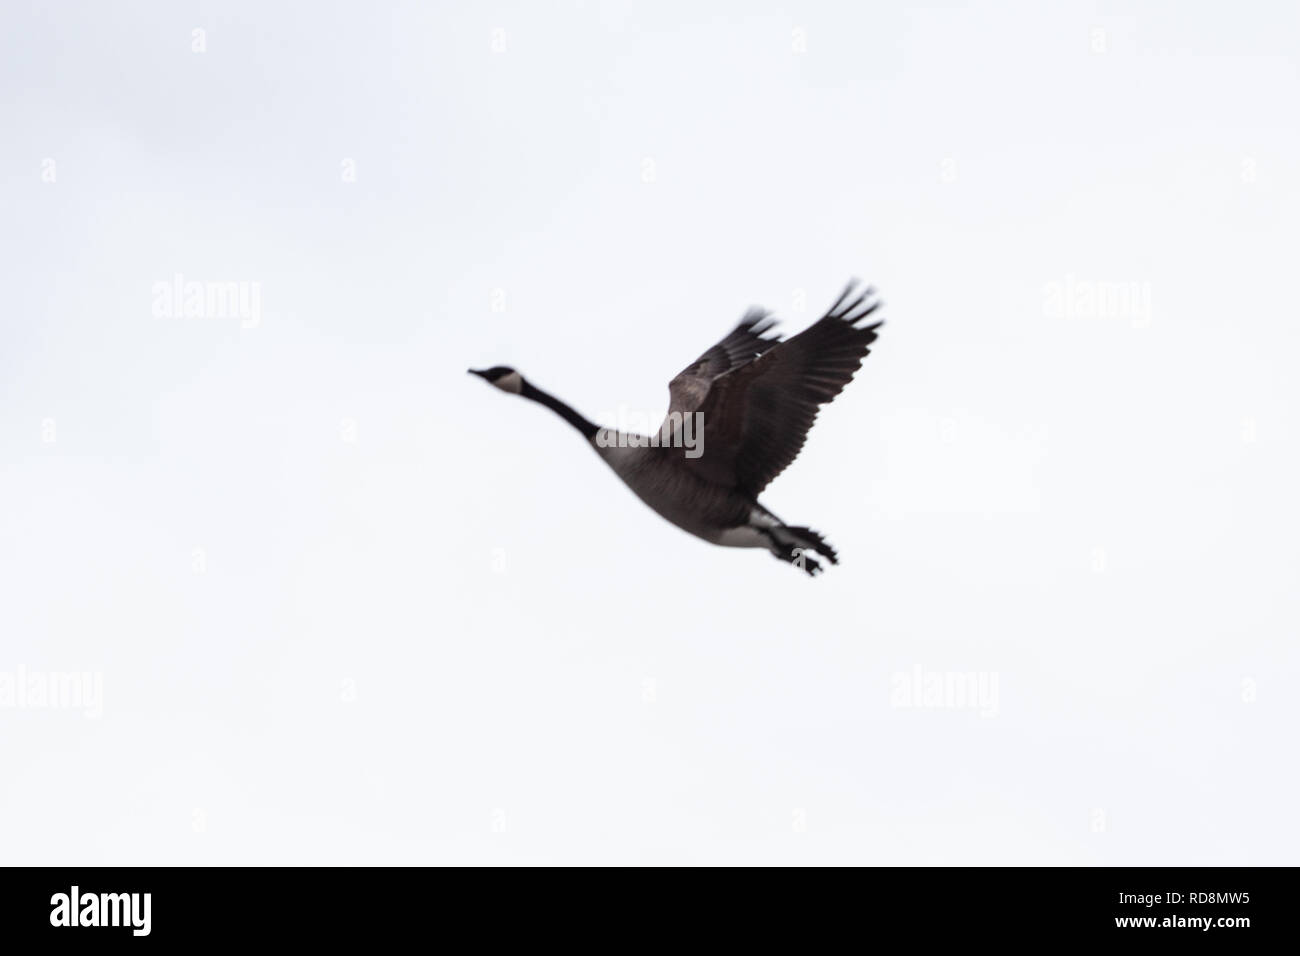 Toronto, CANADA - january 8th, 2019: scared ducks near the wavy lake with stormy weather in background - Stock Image